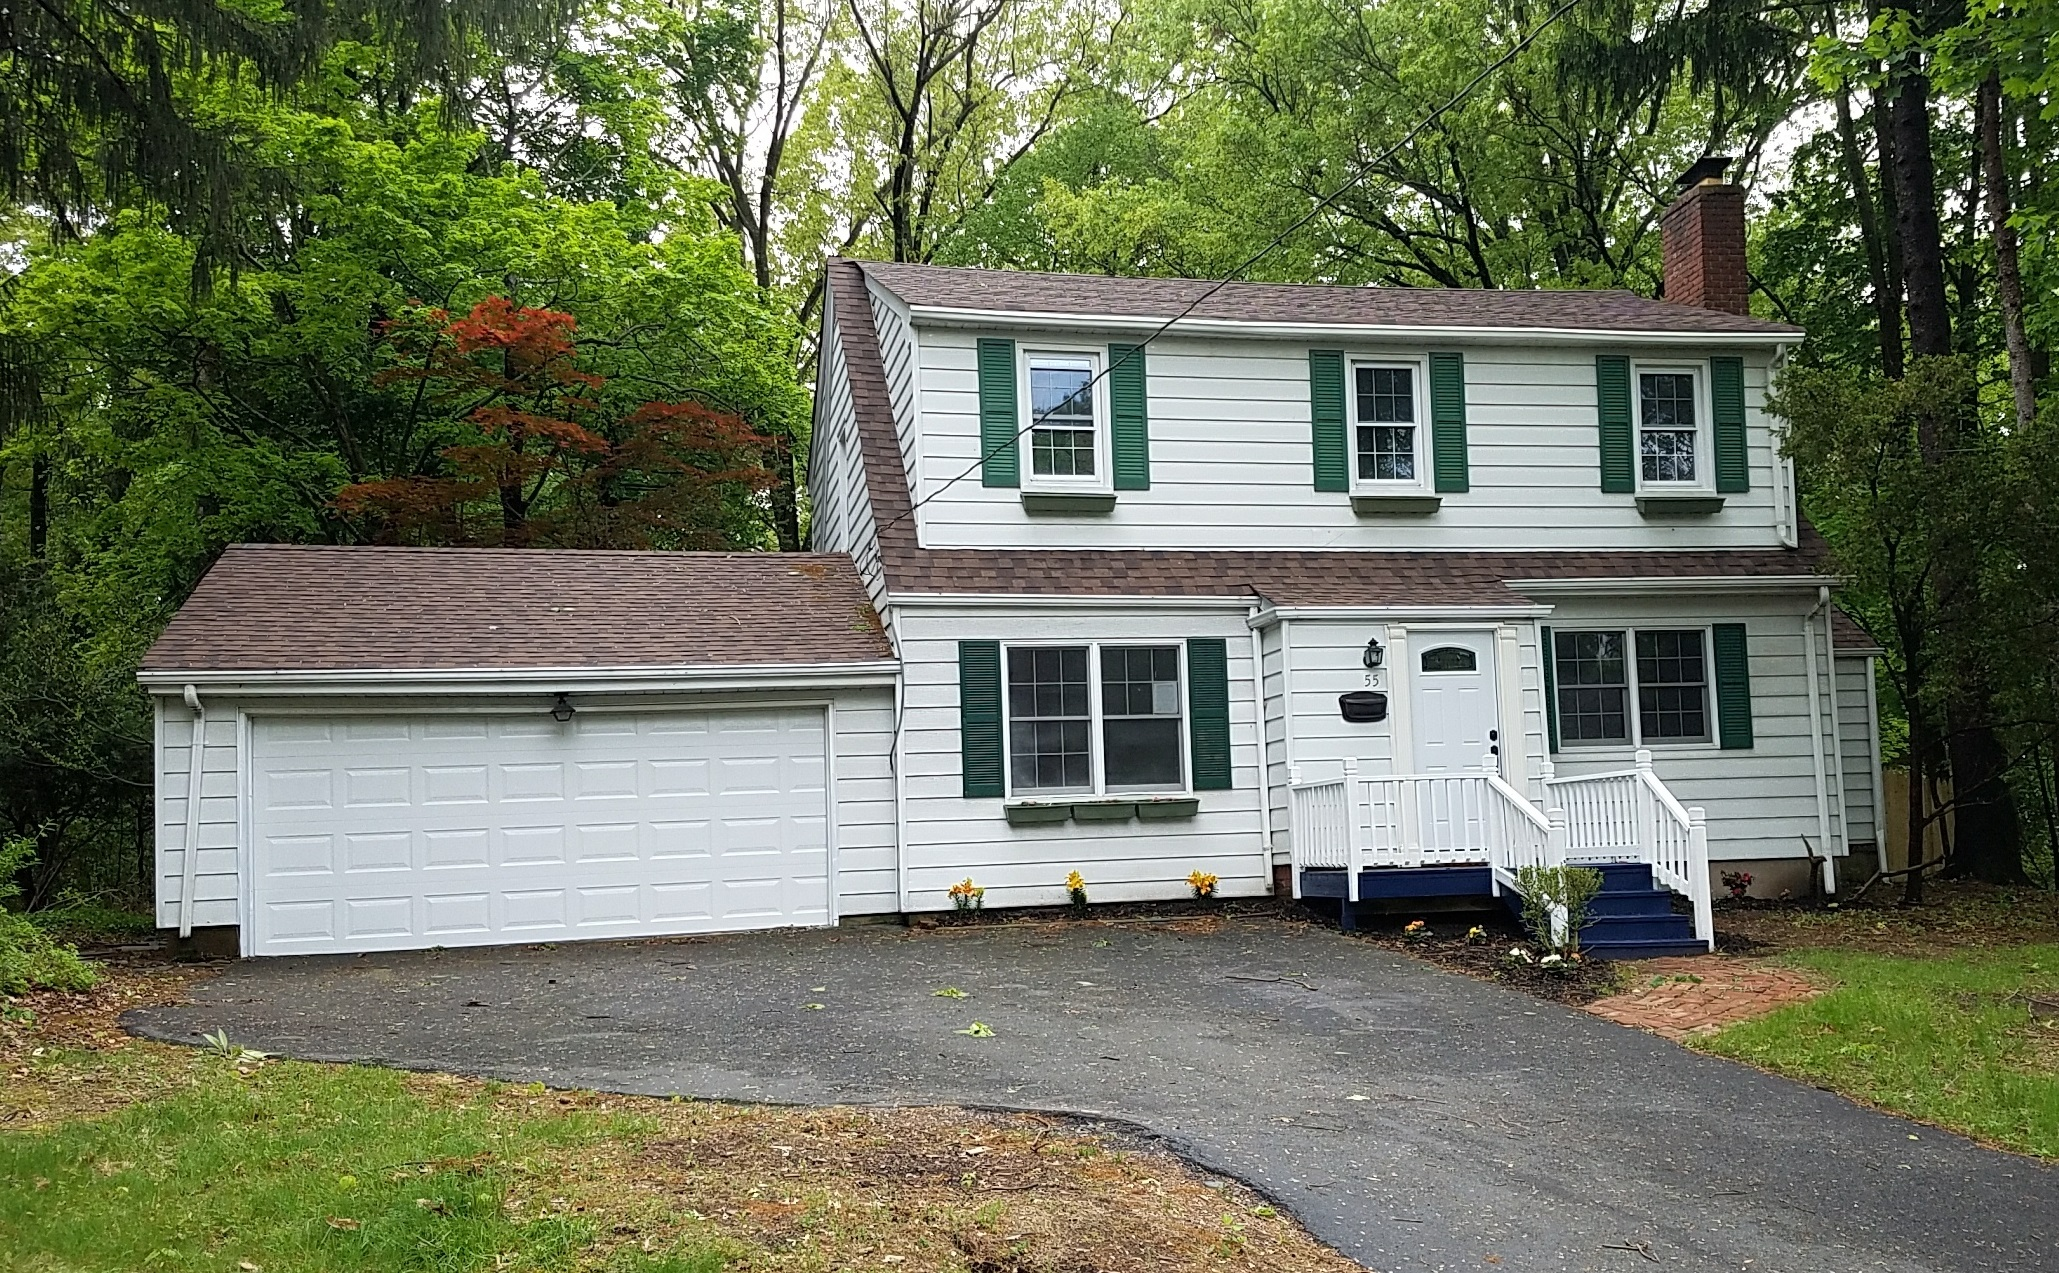 NEW REO – 55 CENTRAL AVE DEMAREST, NJ – $665,000